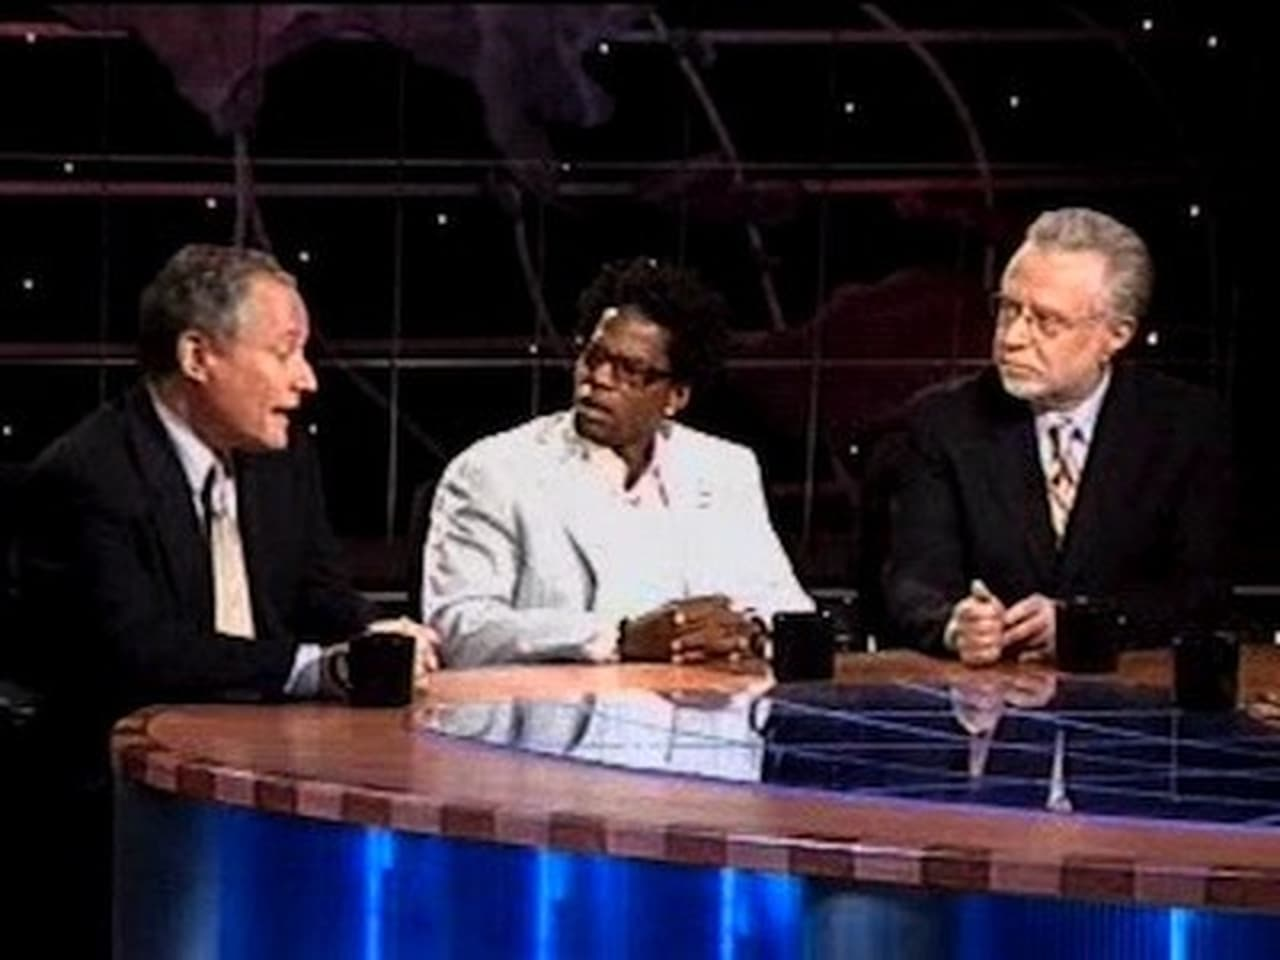 Real Time with Bill Maher - Season 1 Episode 17 : September 05, 2003